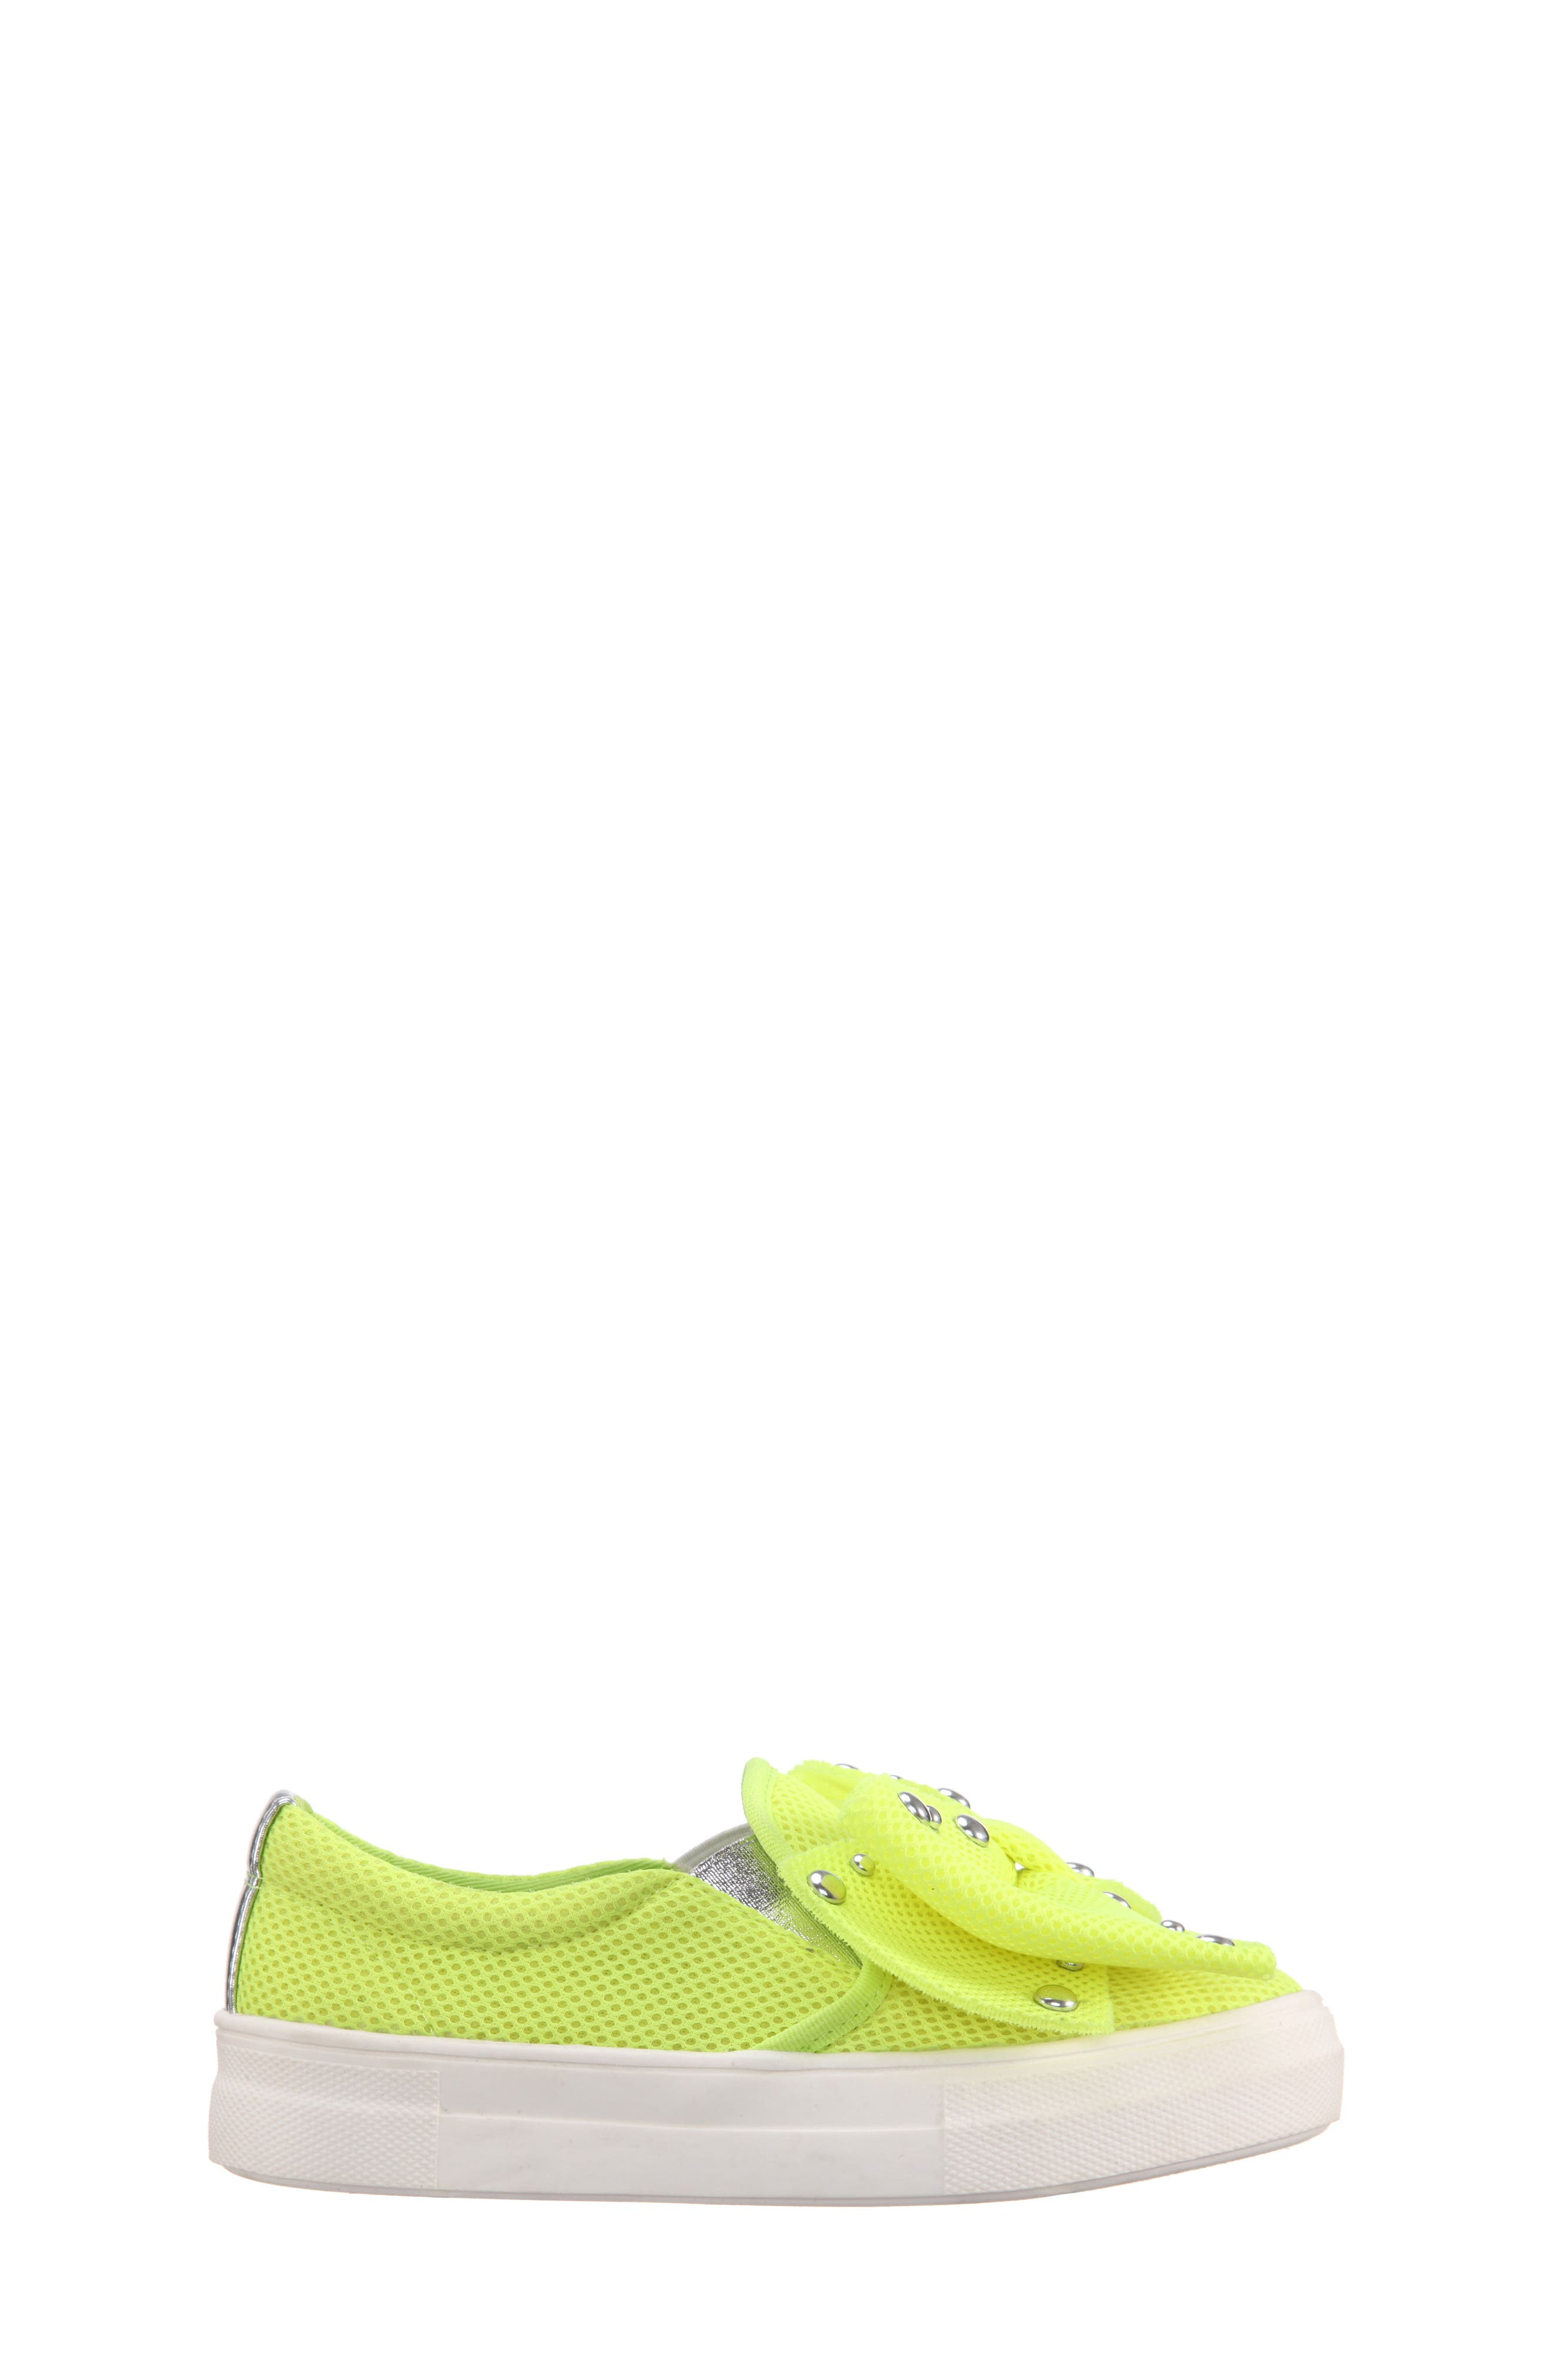 Mary Bow Slip-On Sneaker,                             Alternate thumbnail 3, color,                             Neon Yellow Mesh